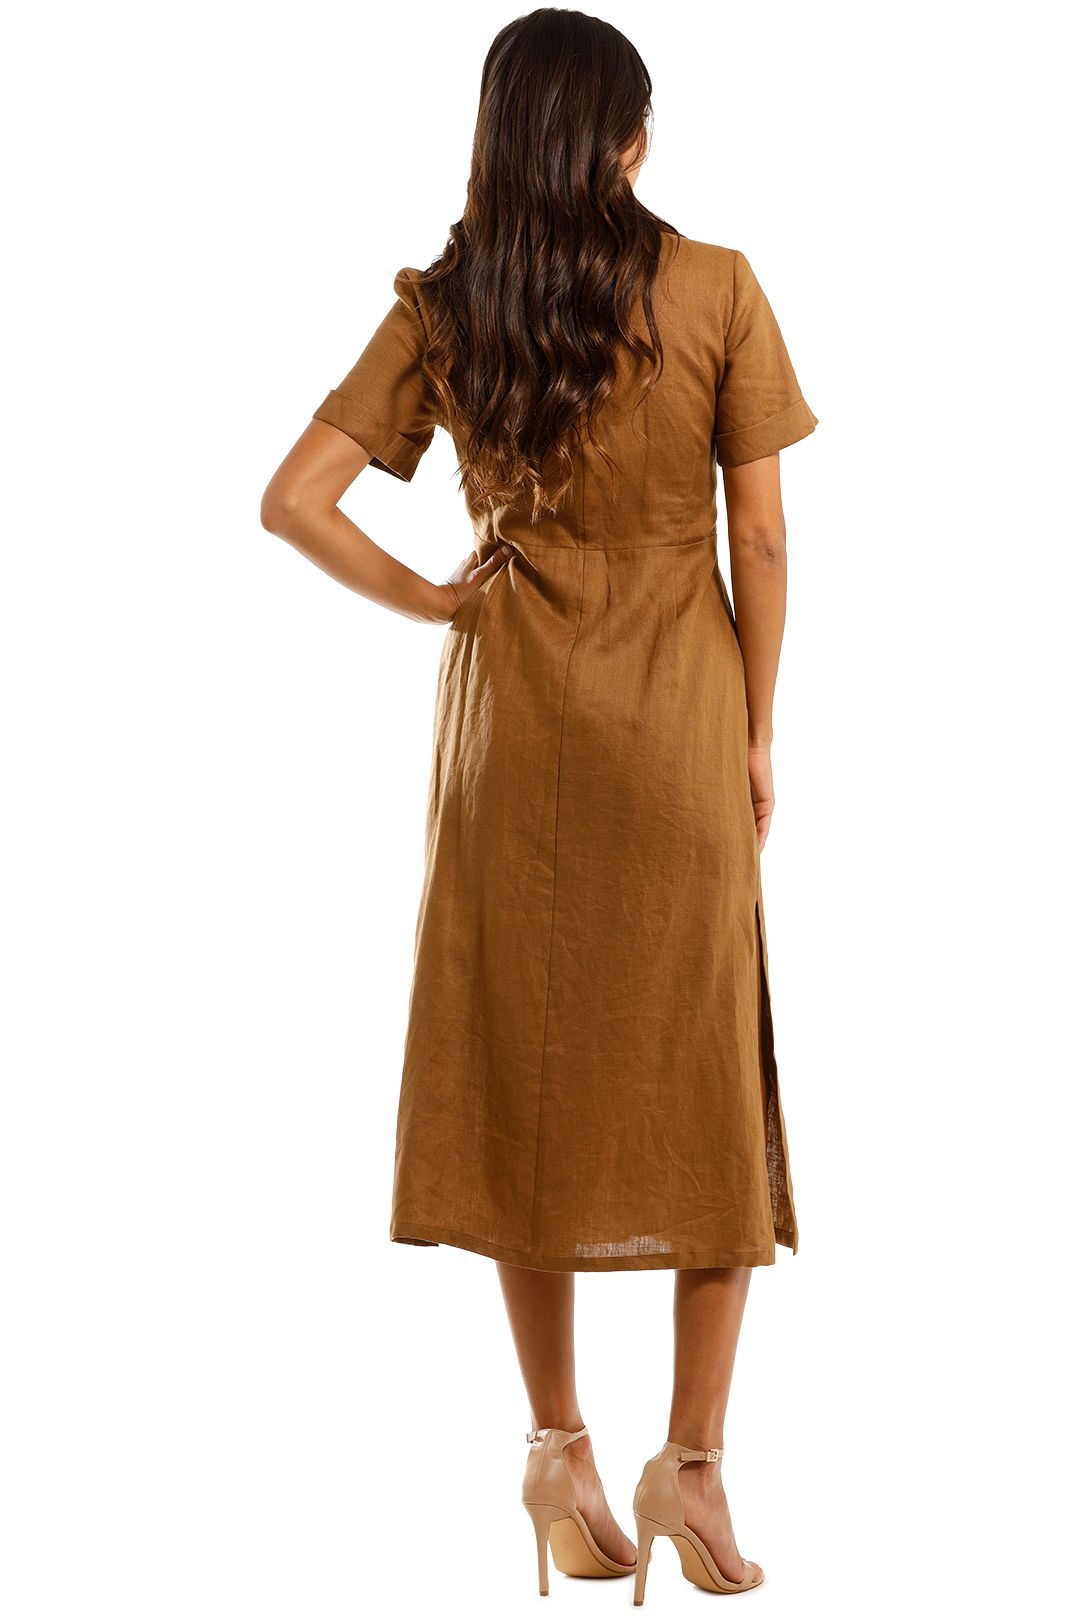 Jillian Boustred Safari Dress Coffee Linen Shirt Dress